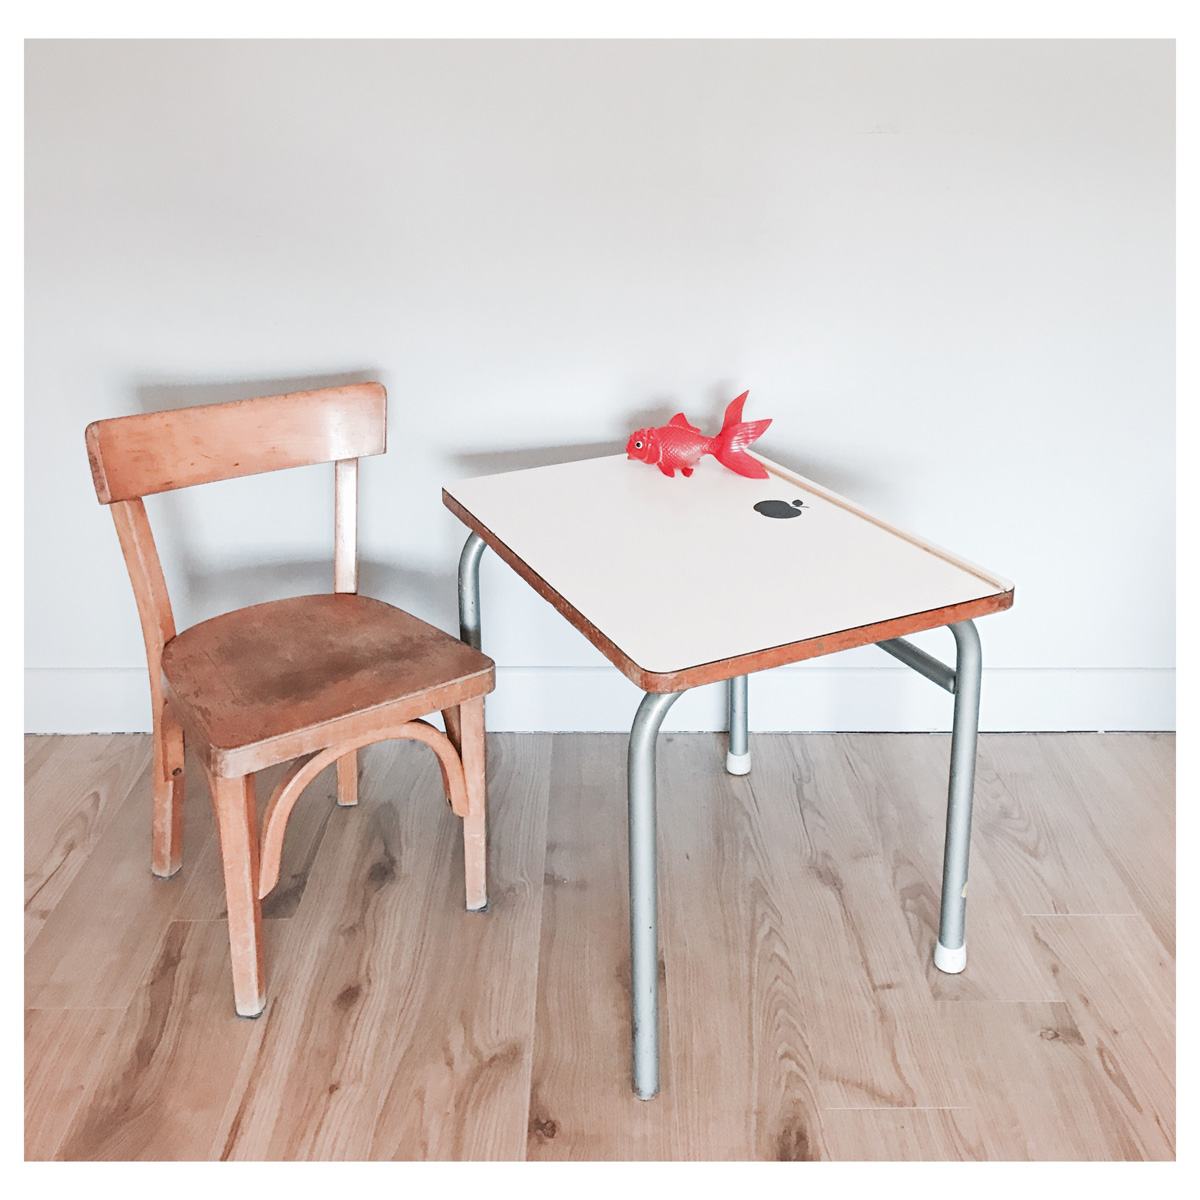 Petite table bureau en formica les happyvintage for Table bureau